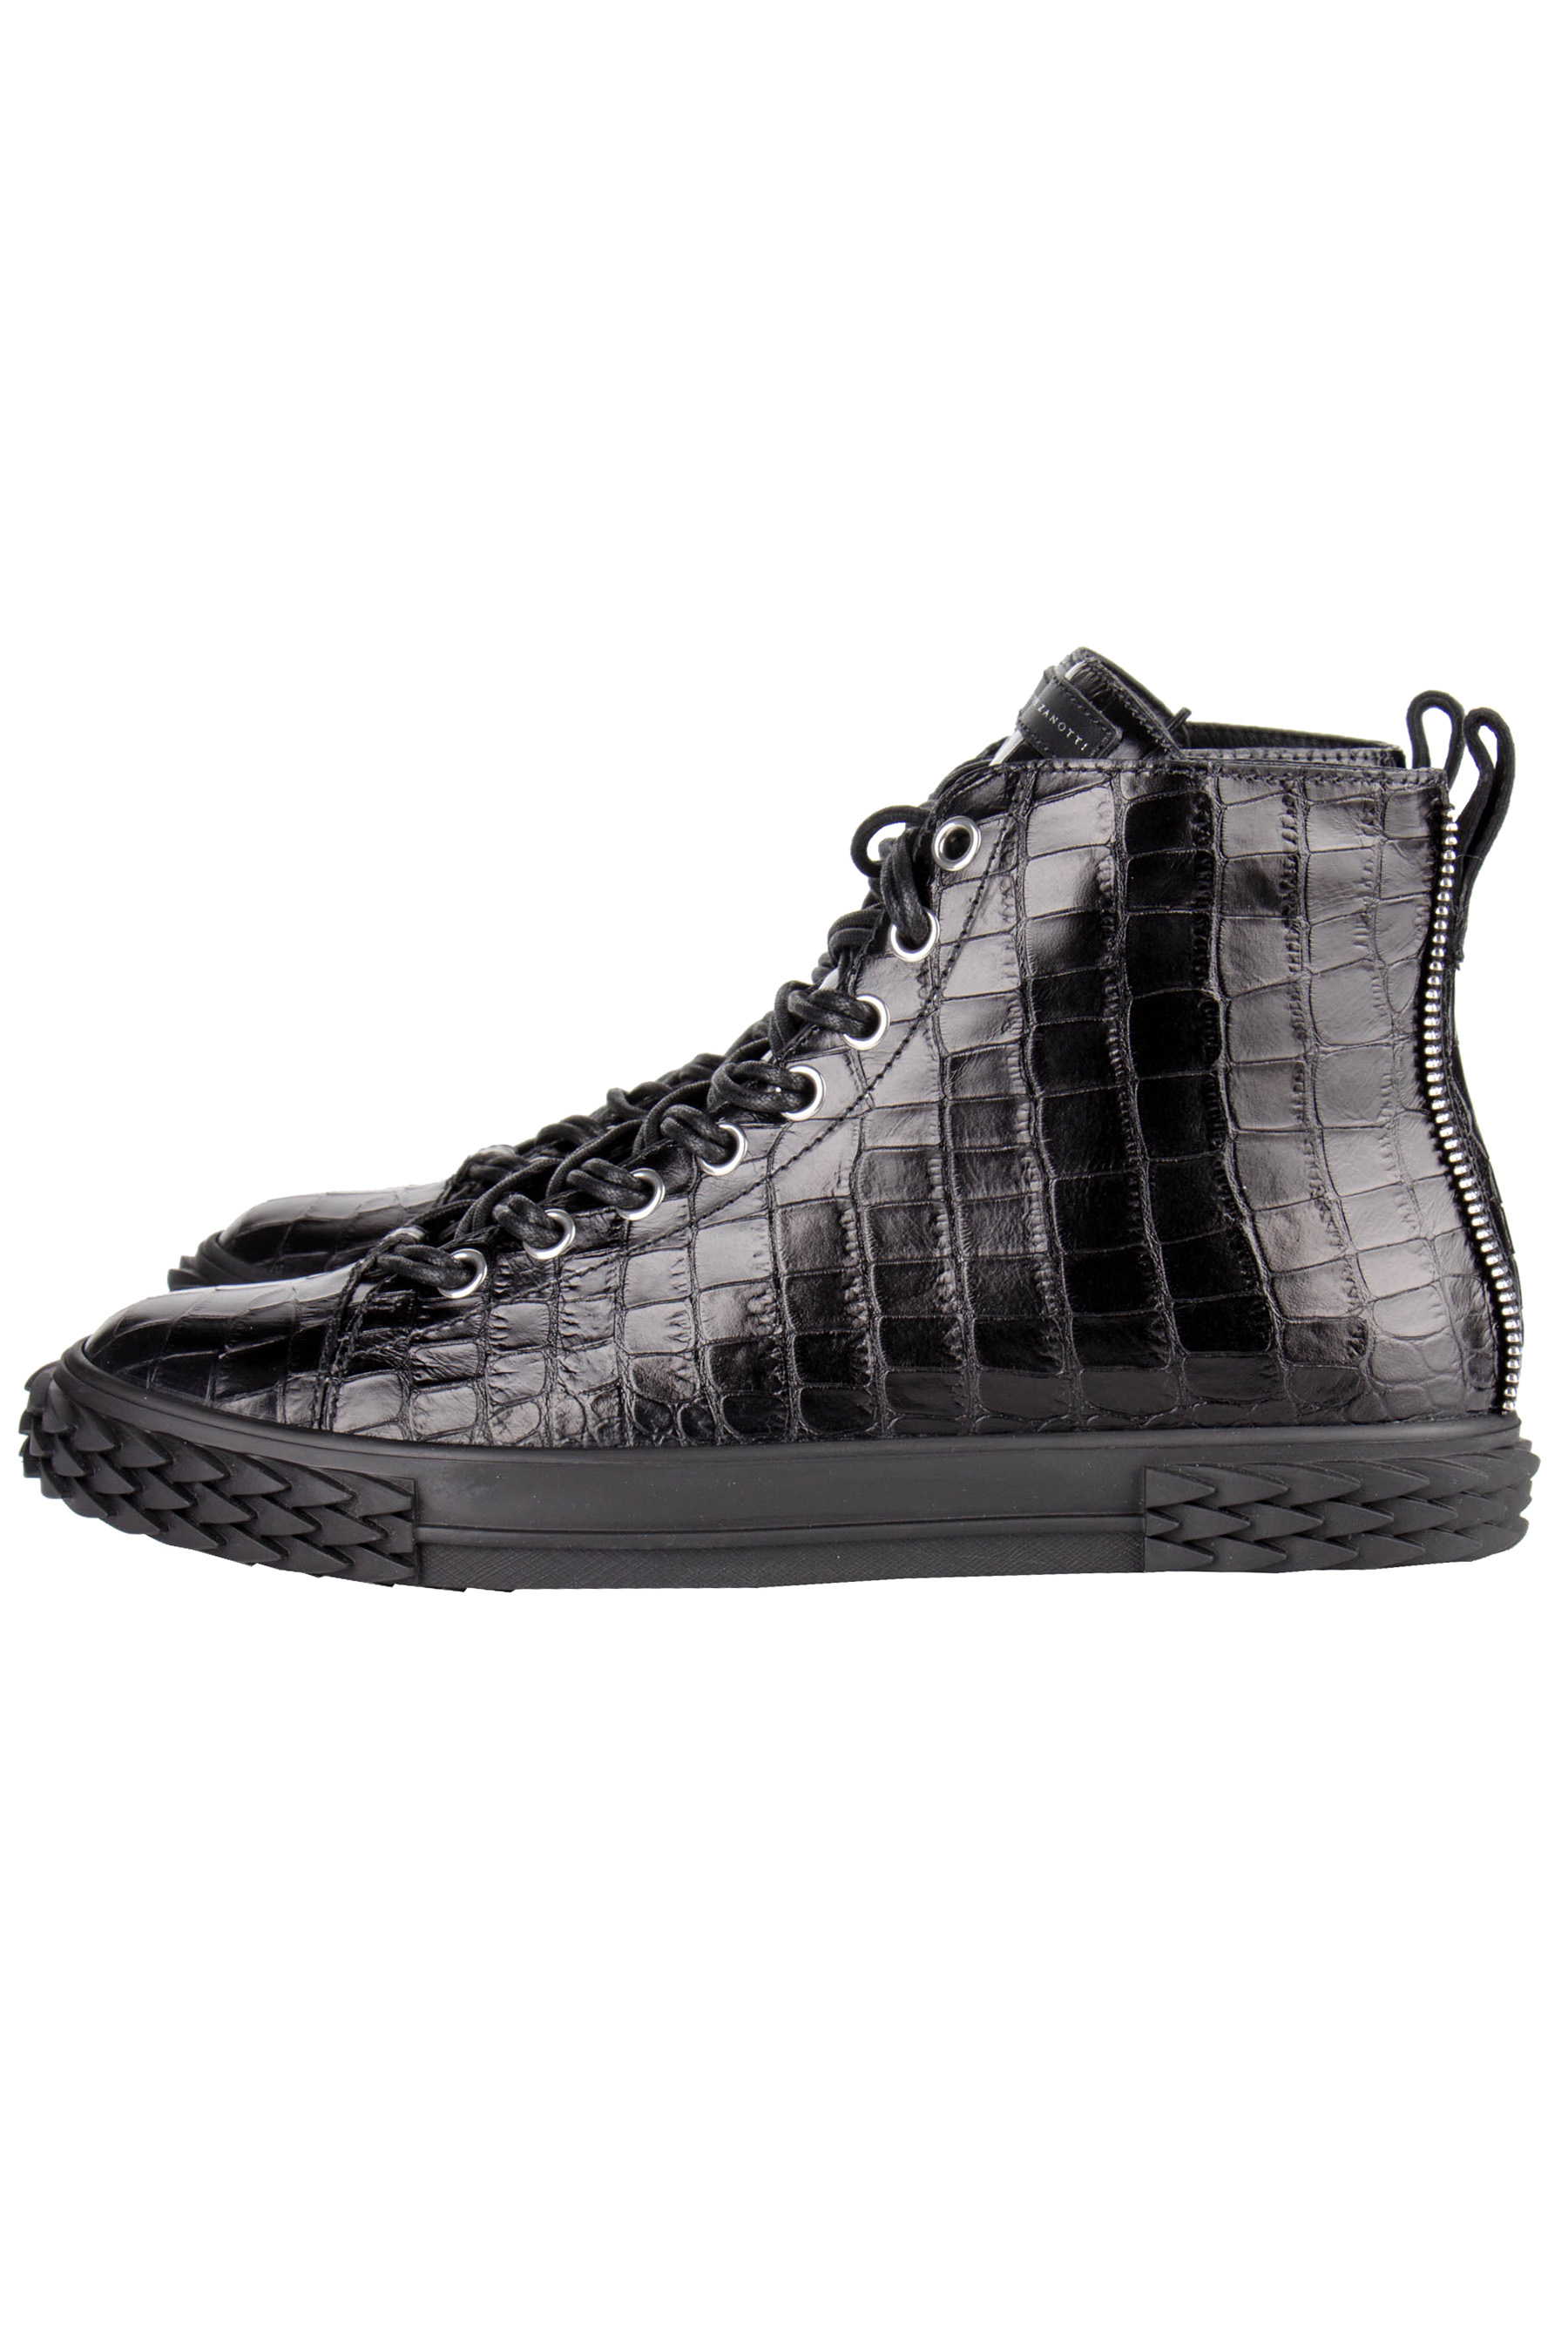 29e783cdcb366 GIUSEPPE ZANOTTI High Top Sneakers Blabber | Sneakers | Shoes | Men ...